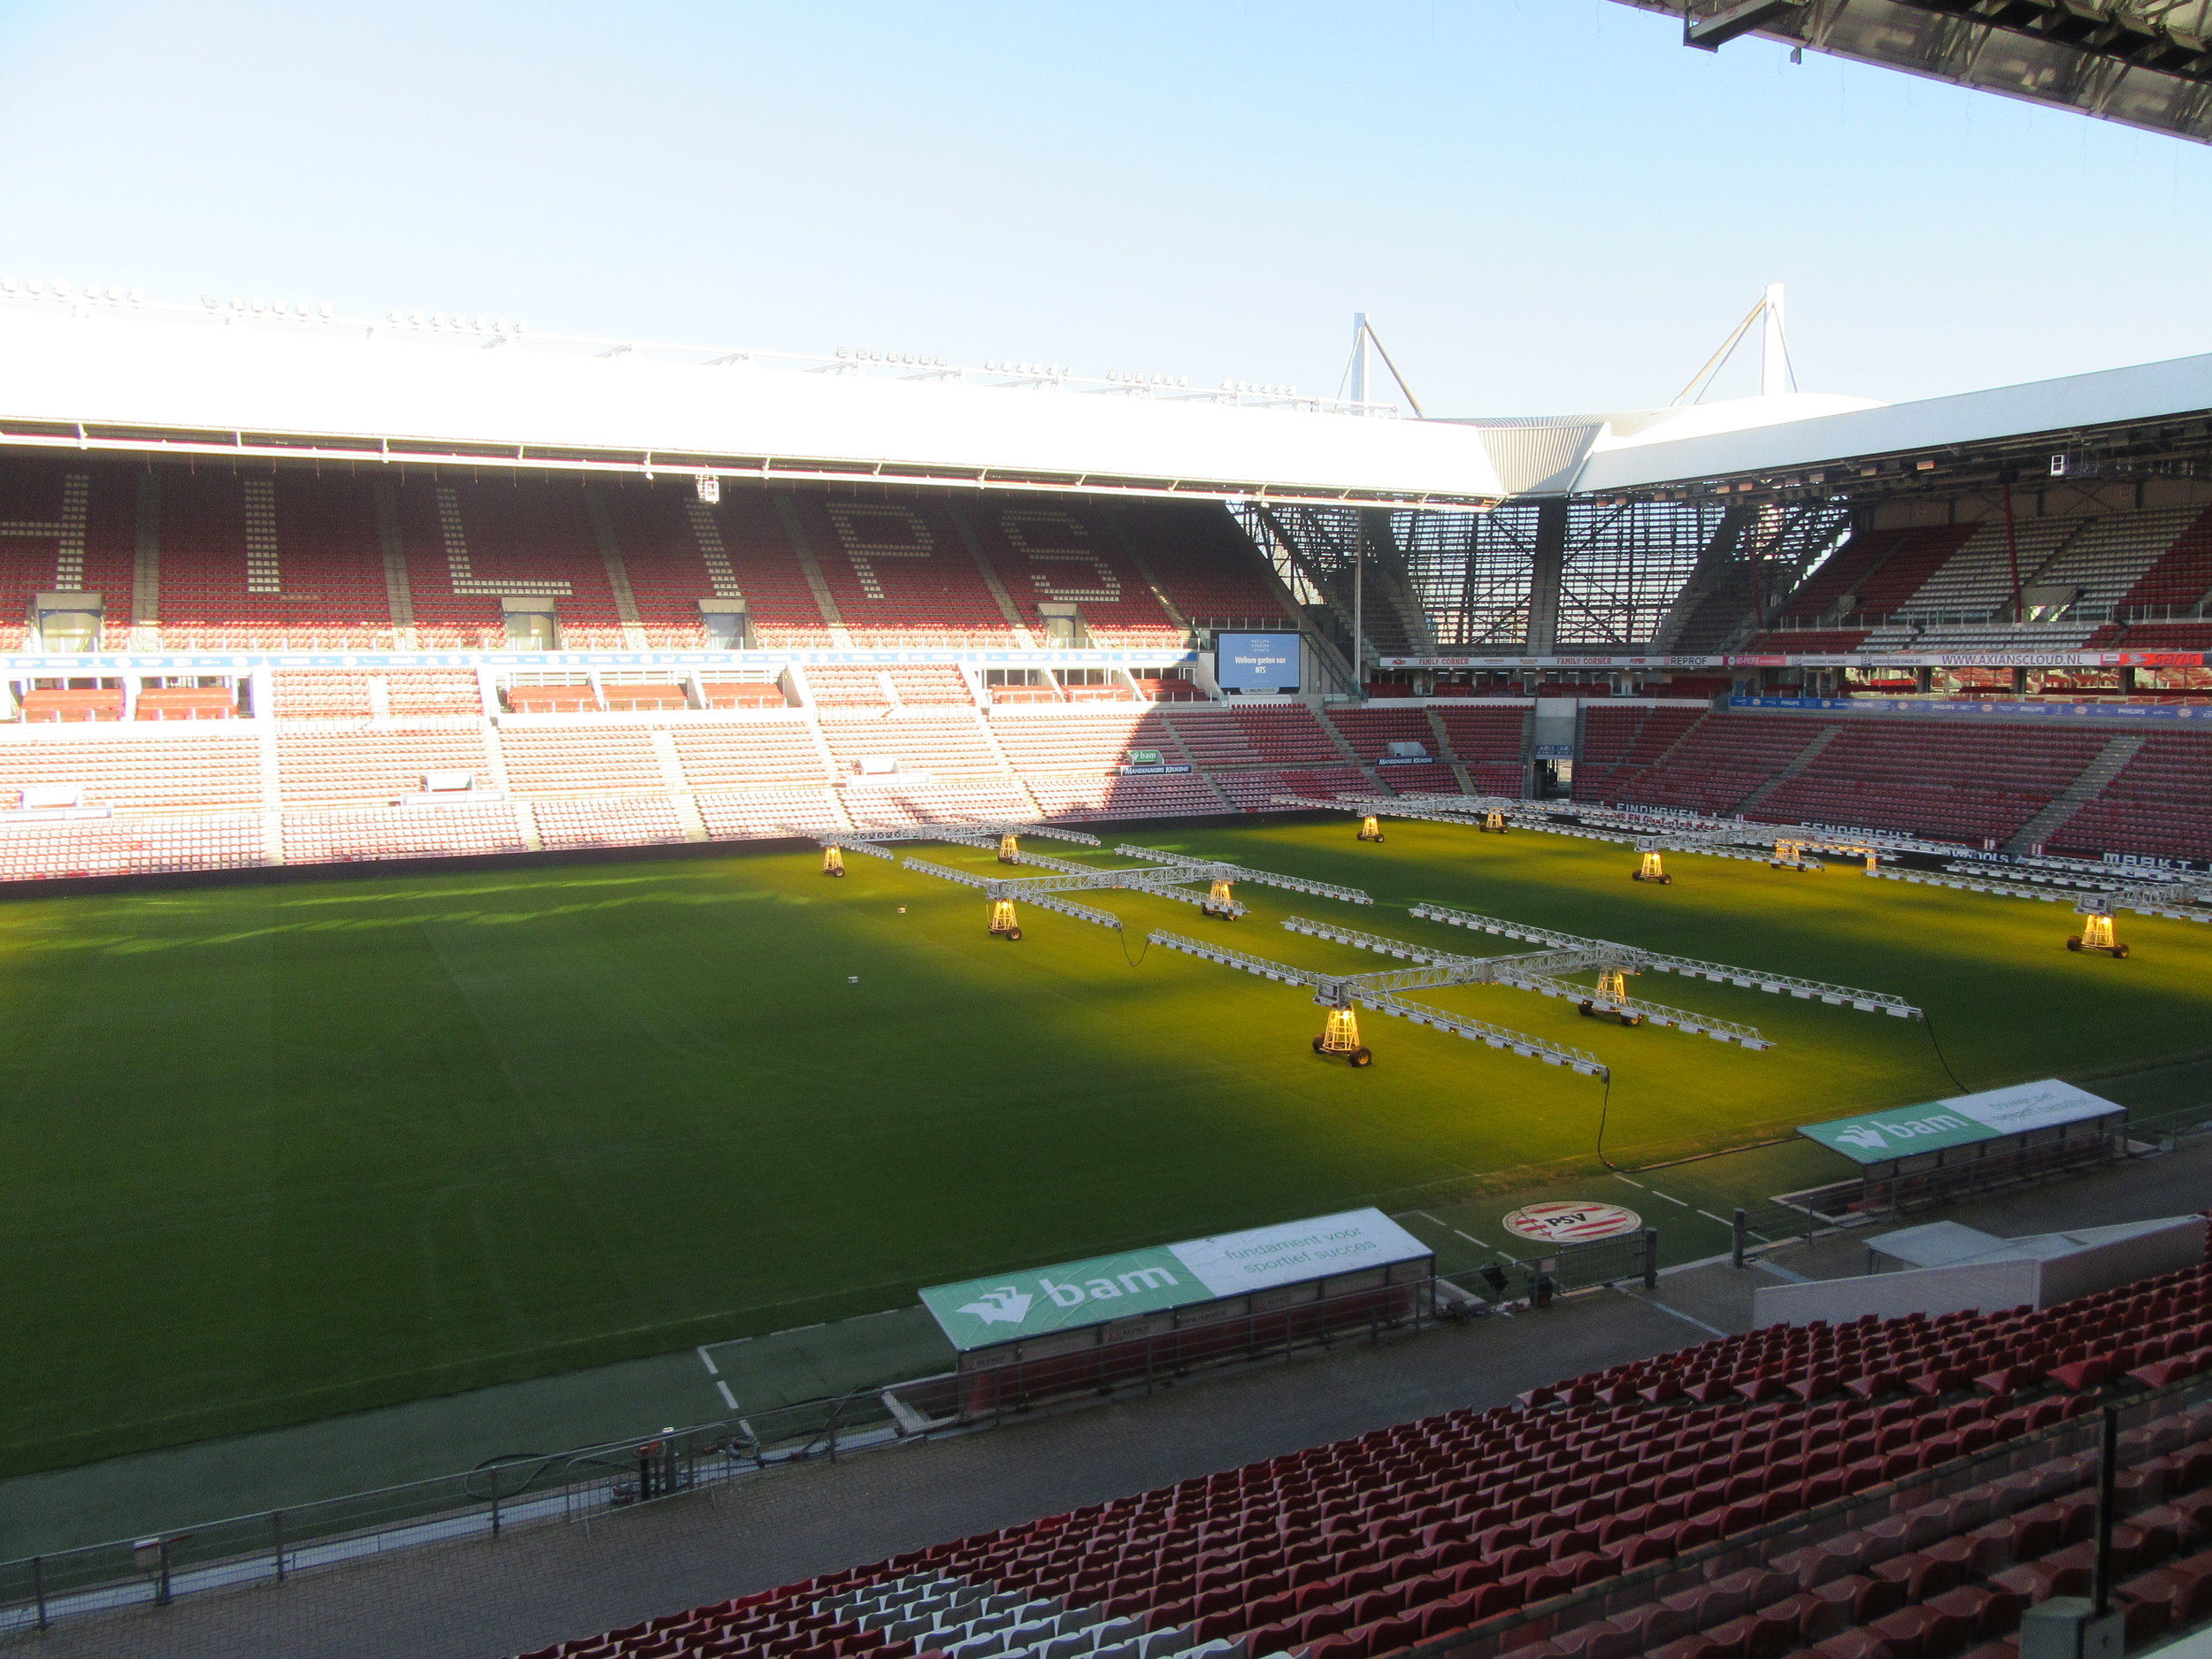 Inside Philips Stadion - the home ground of PSV Eindhoven.